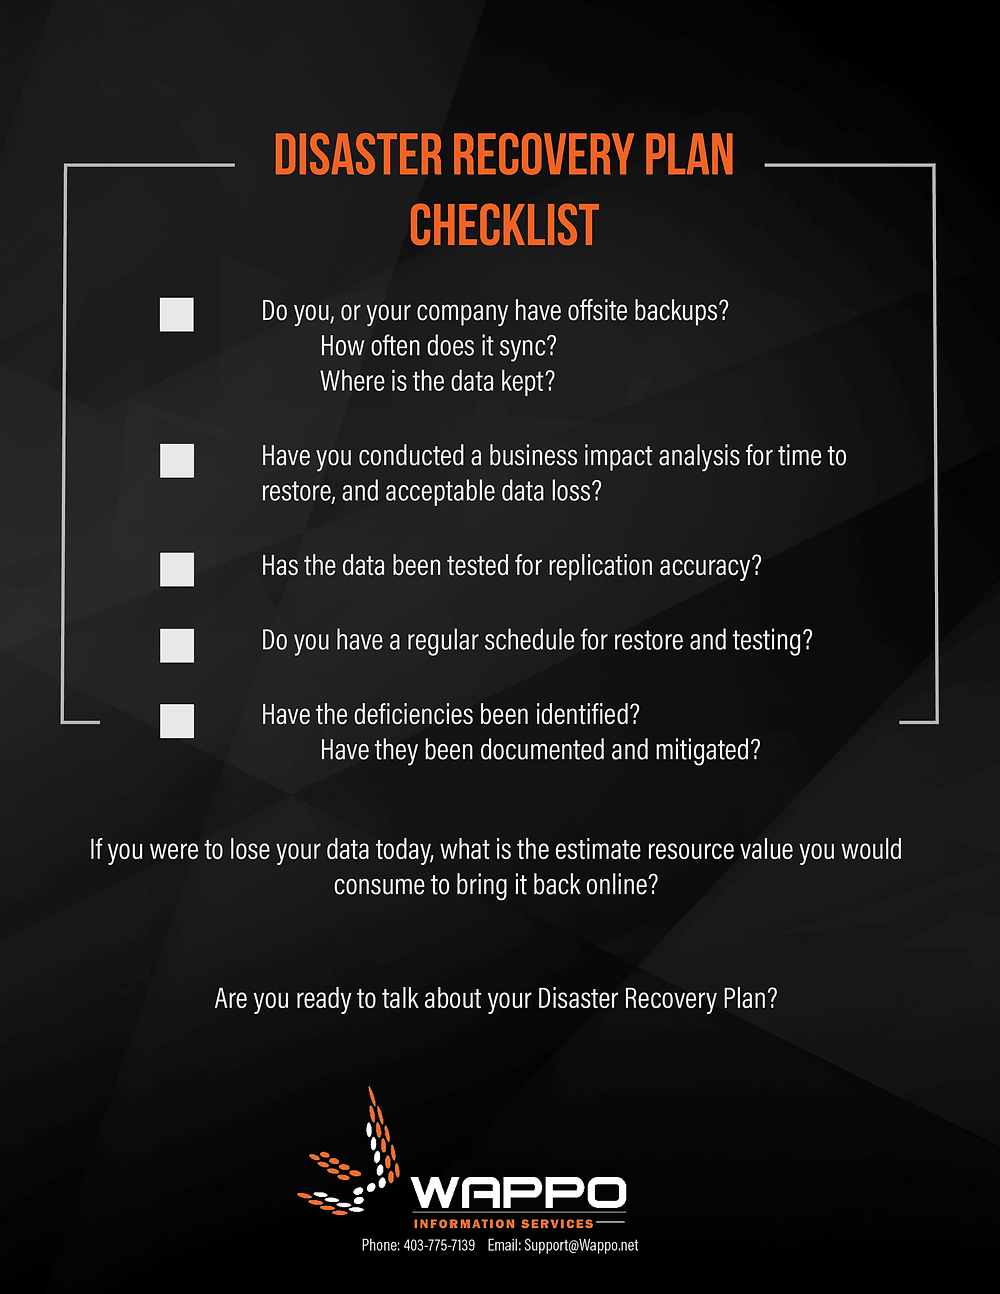 Get the conversation started with our DRP checklist!